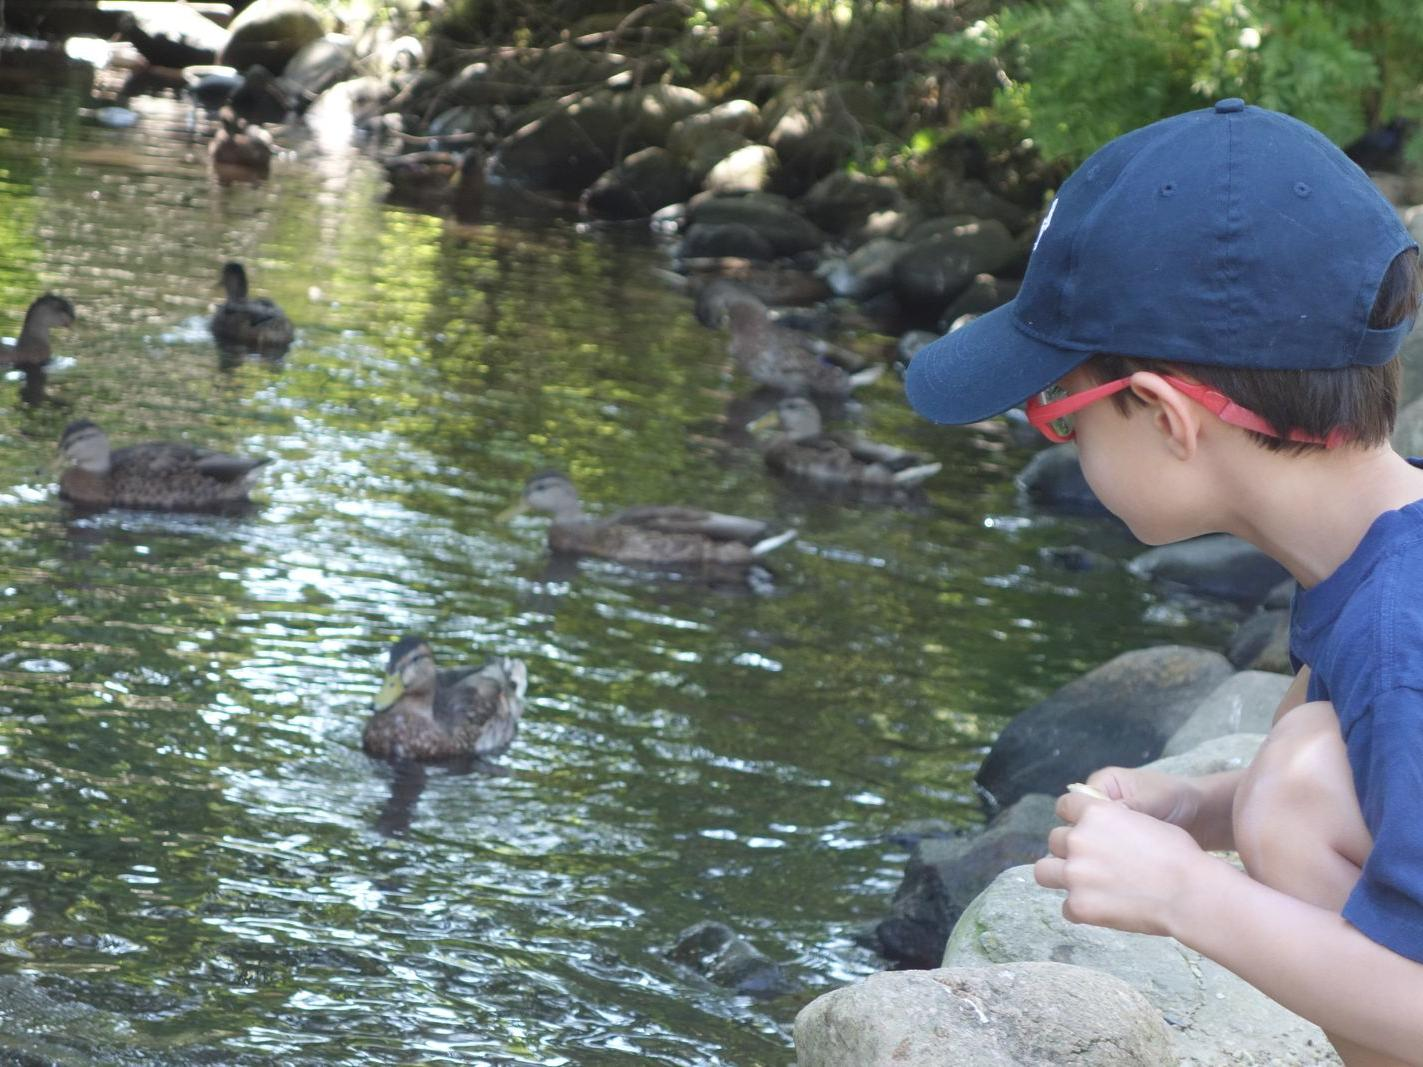 a child looking at ducks in a pond